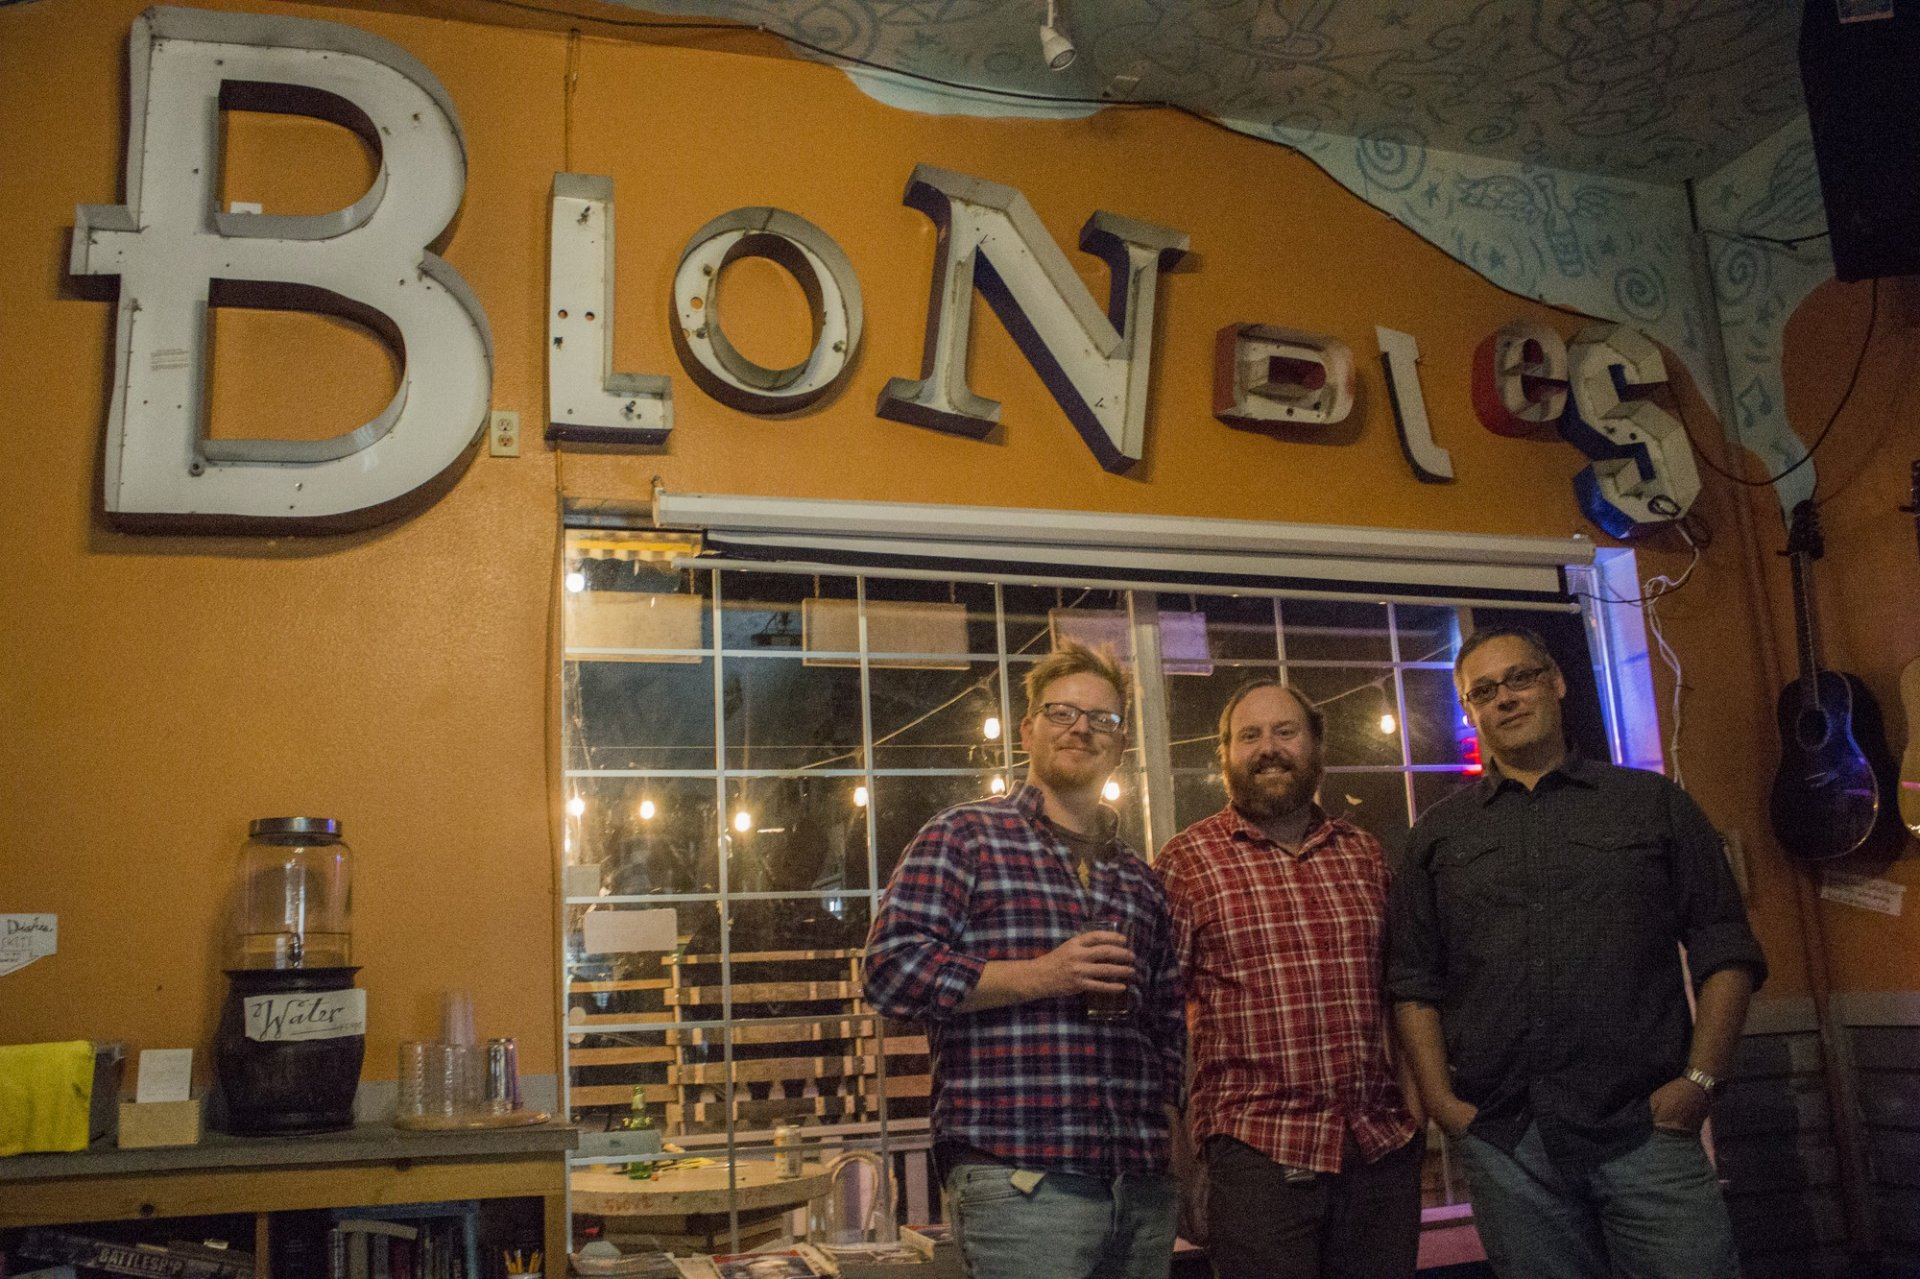 Chris Harmon, professor of Chemistry, C.D Hoyle, professor of physics and astronmy, and Tyler Mitchell, professor of physics and astronmy at Science tackle tough topics during Tap Night at Blondies Food and Drink on Nov 4. | Photo by Tony Wallin